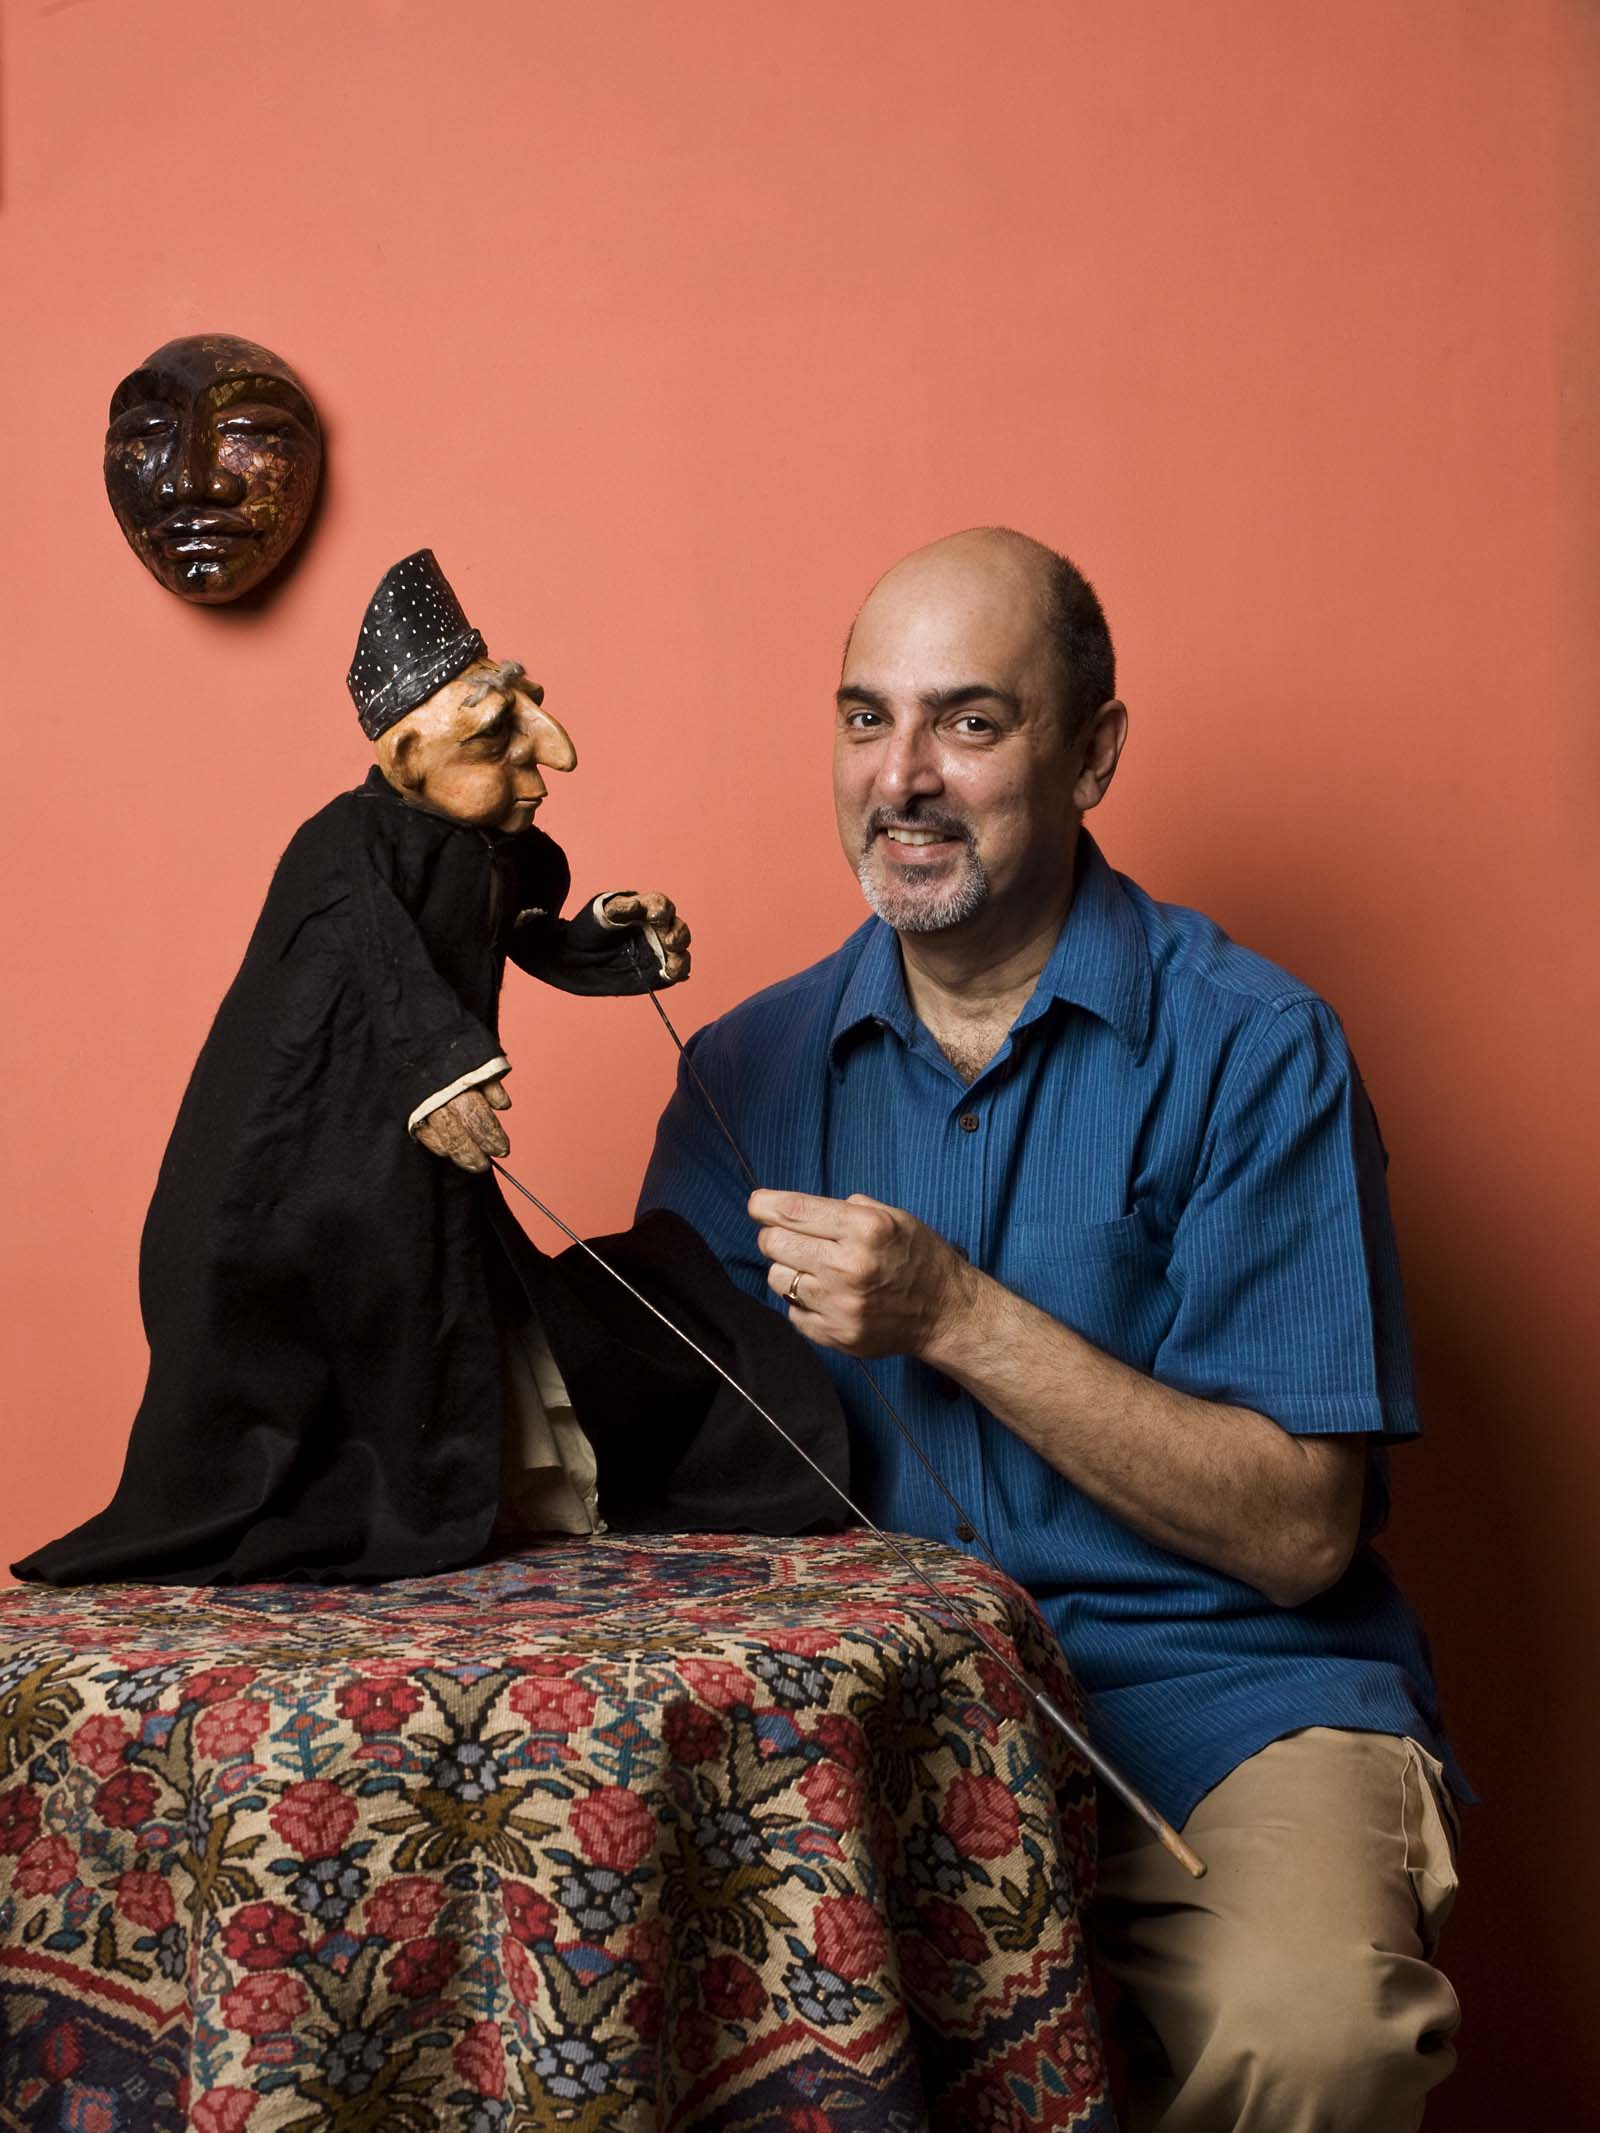 Indian puppeteer, puppet theatre and festival dire<em>c</em>tor, Dadi D. Pudumjee with rod puppet of a Parsee gentleman he made in 1976. Photo: Anay Maan